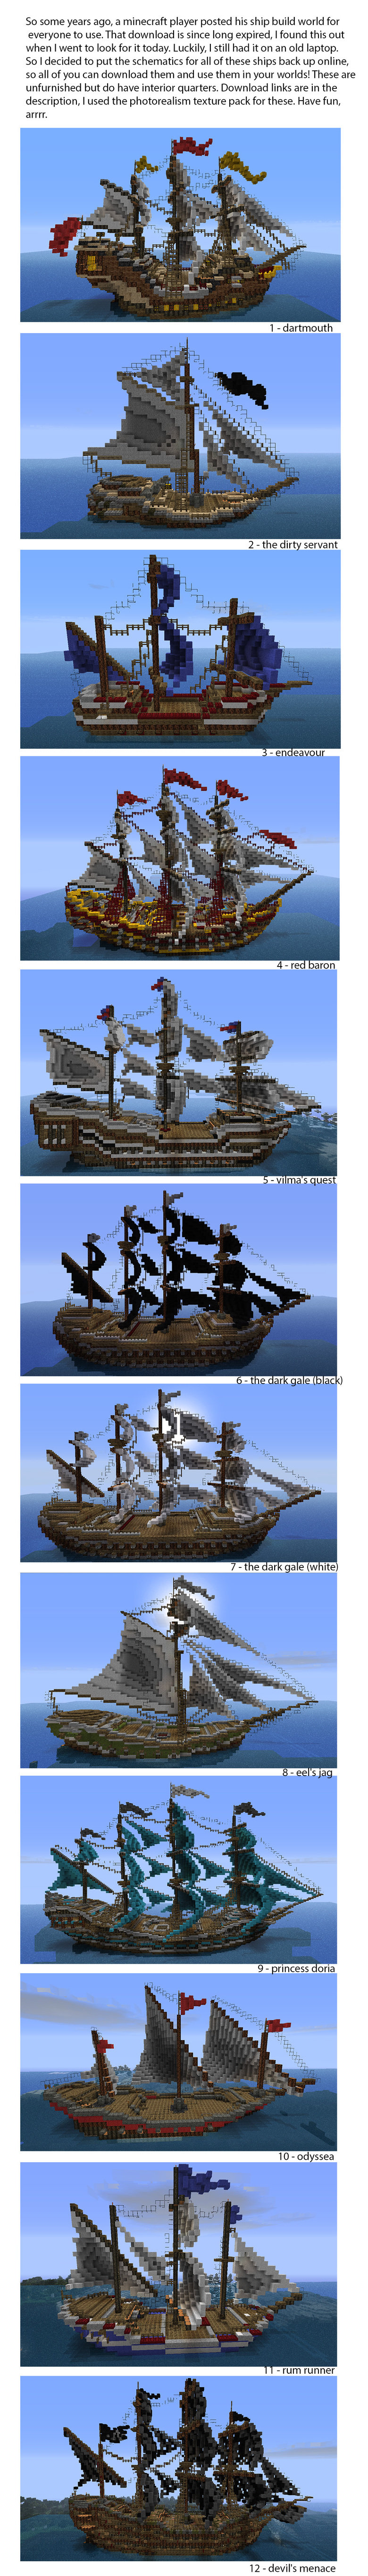 Minecraft Ships. Here are the download links, in order. 1. Dartmouth 2. The Dirty Servant 3. Endeavour 4. Red Baron 5. Vilma's Quest 6. The Dark Gale (black sai